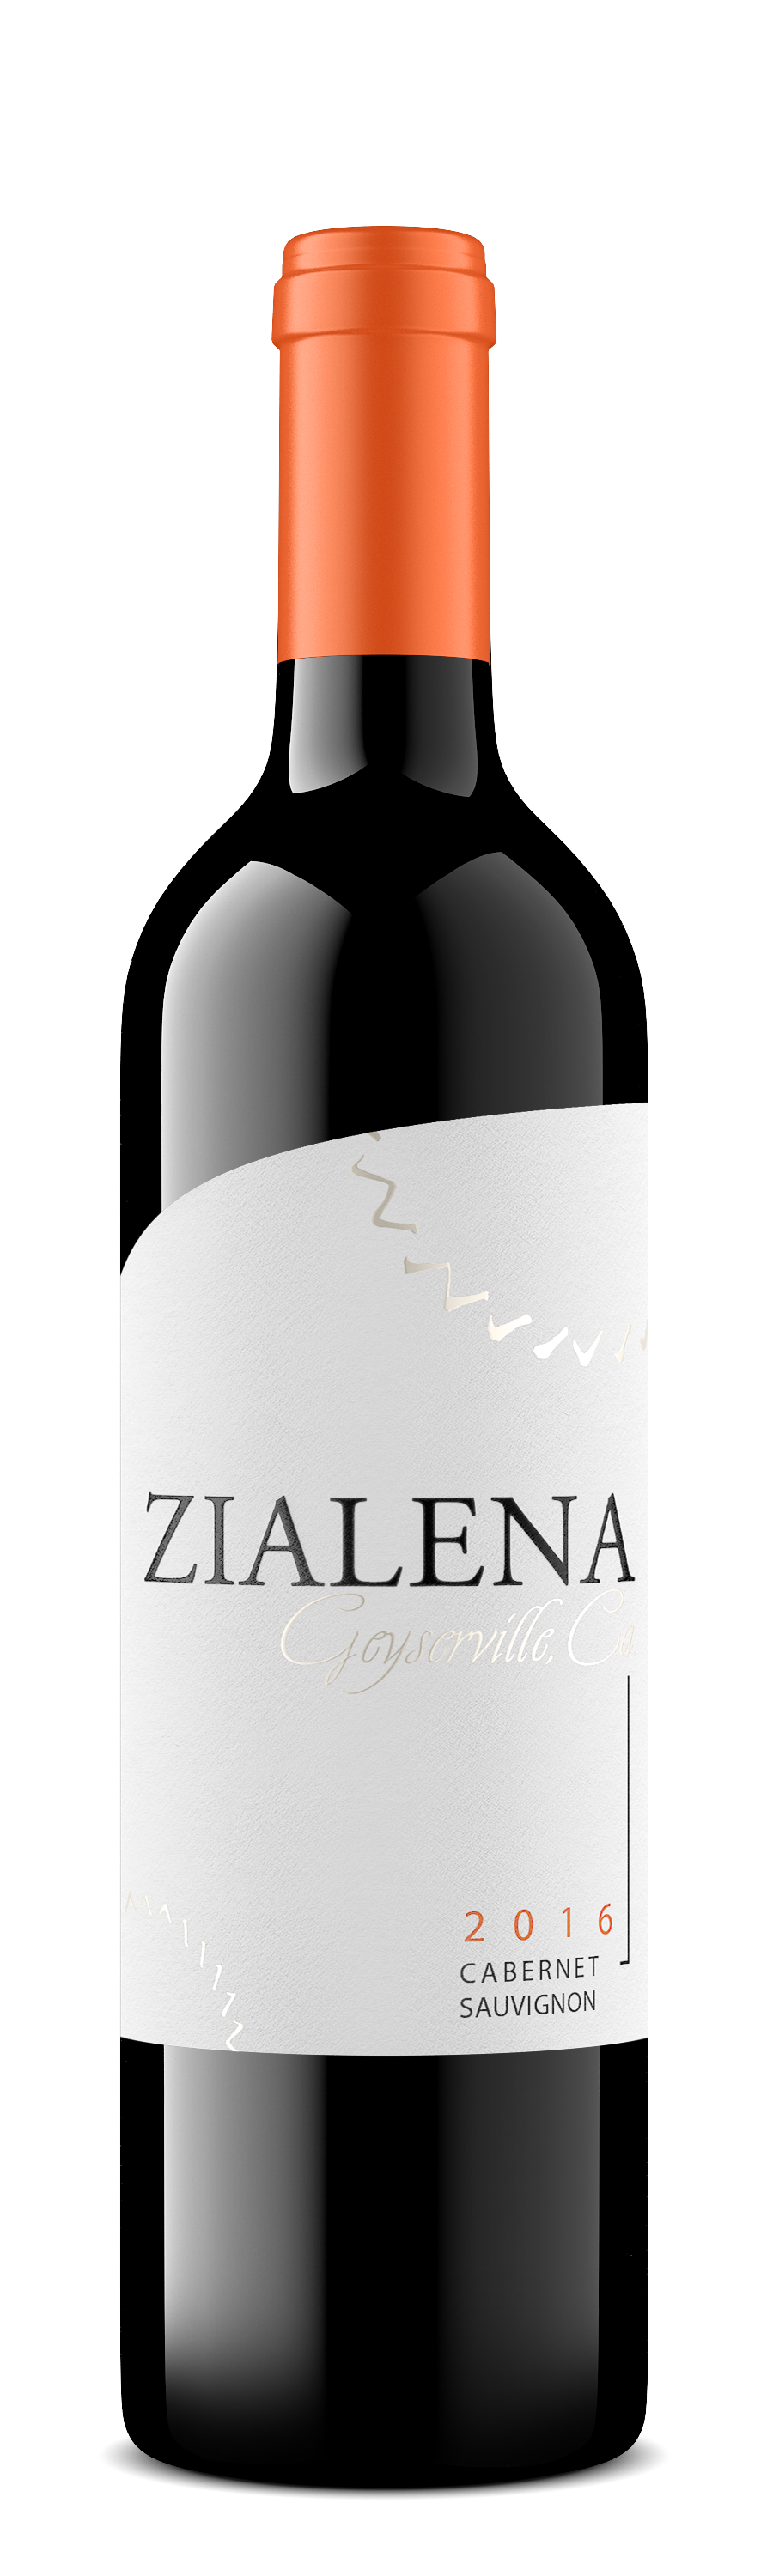 Product Image for 2013 Cabernet Sauvignon